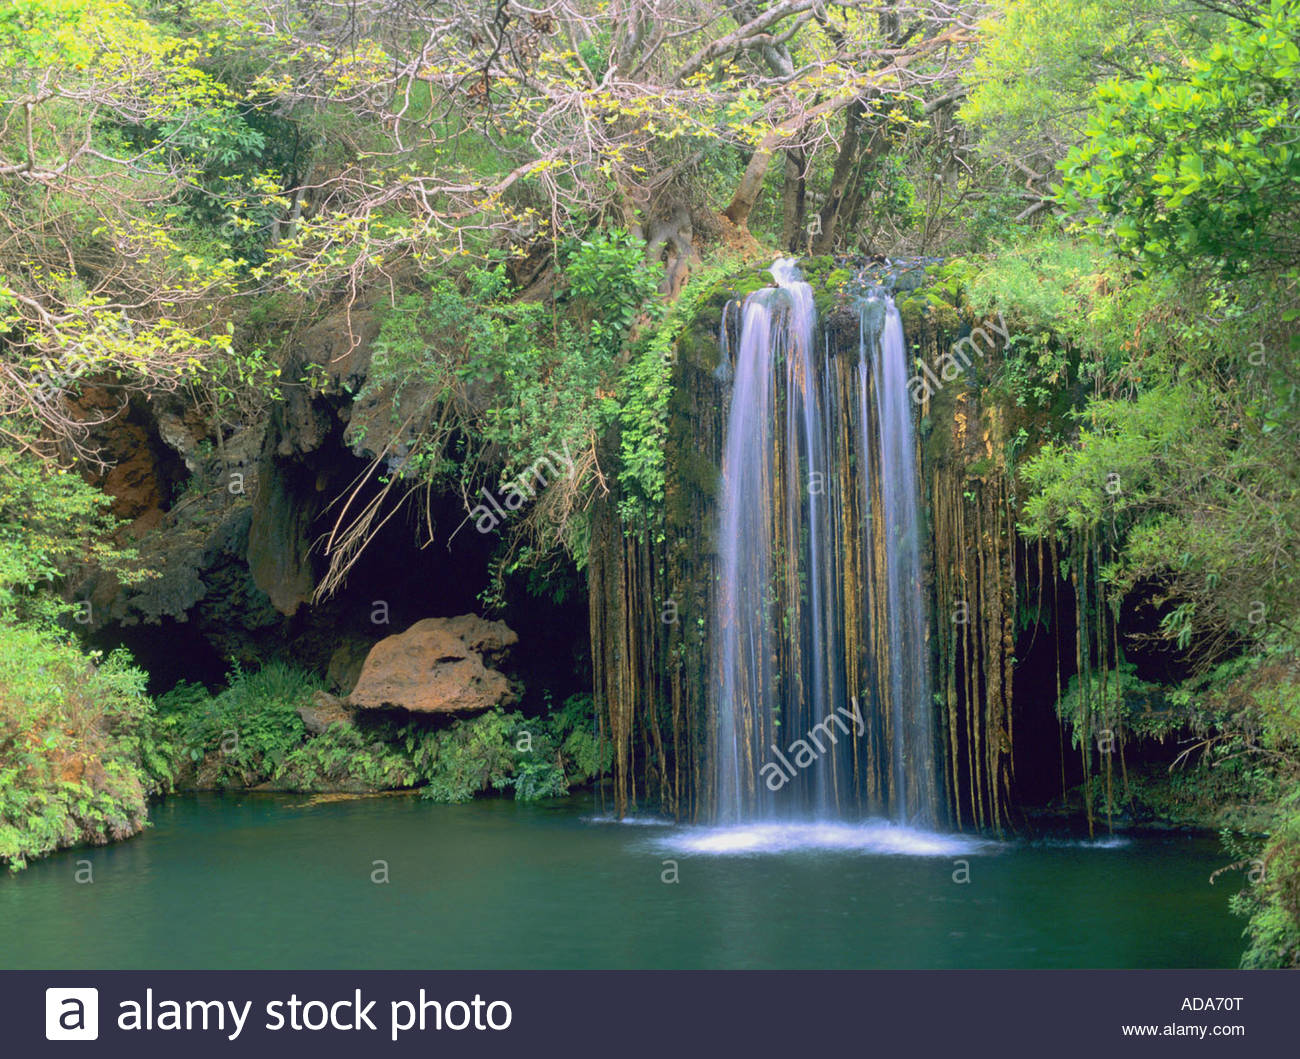 rainforest in south africa images